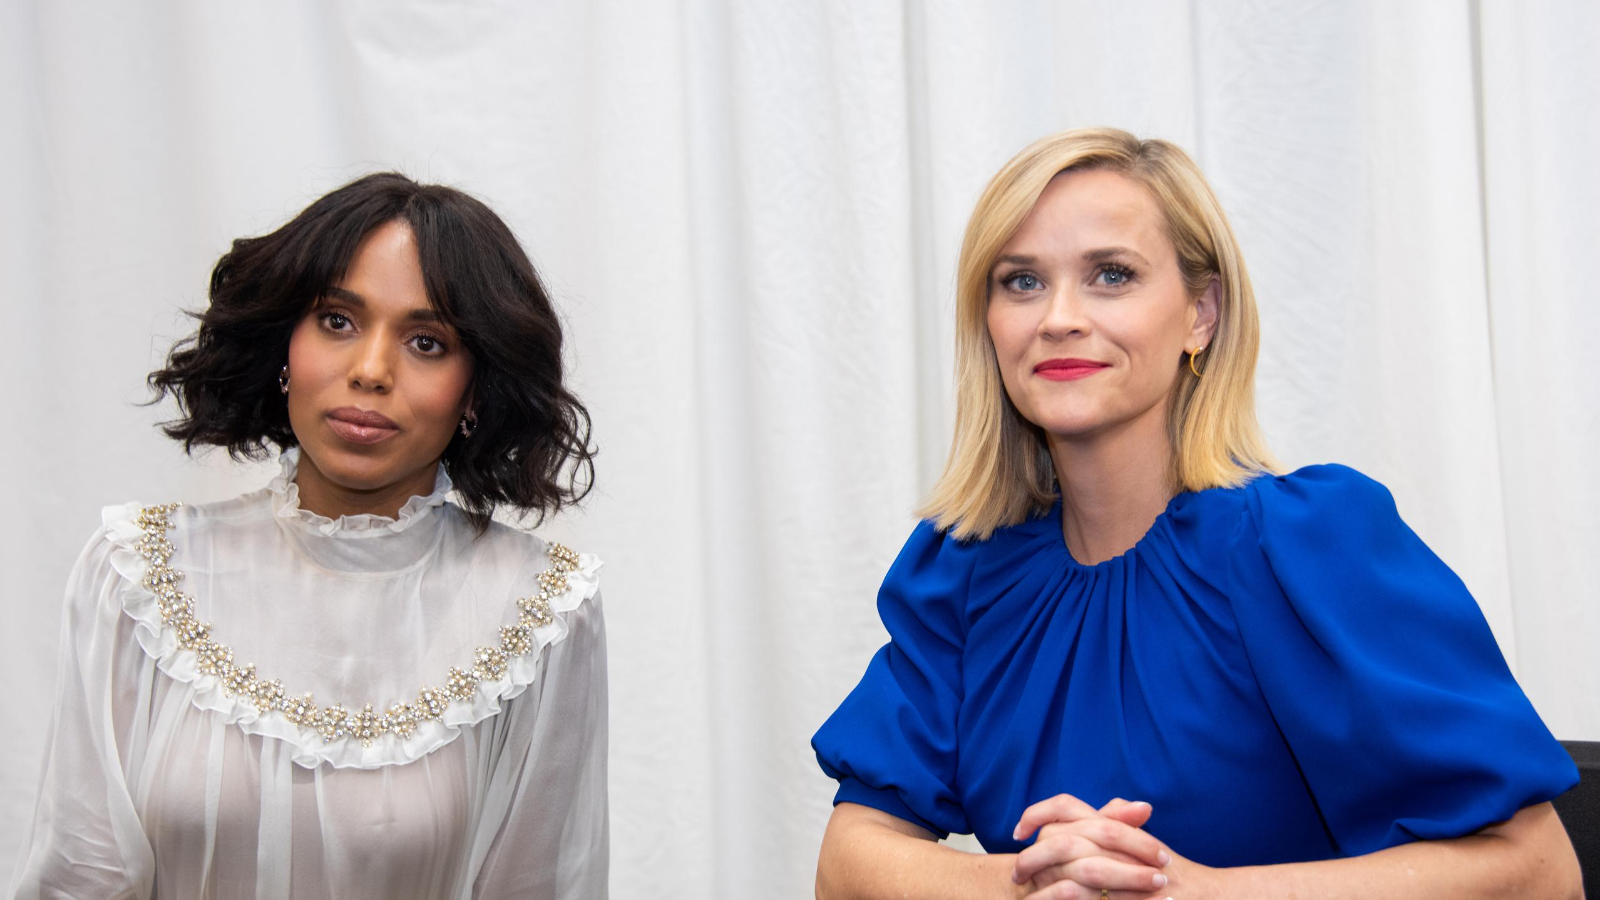 Kerry Washington i Reese Witherspoon (Fot. V E Anderson/WireImage)